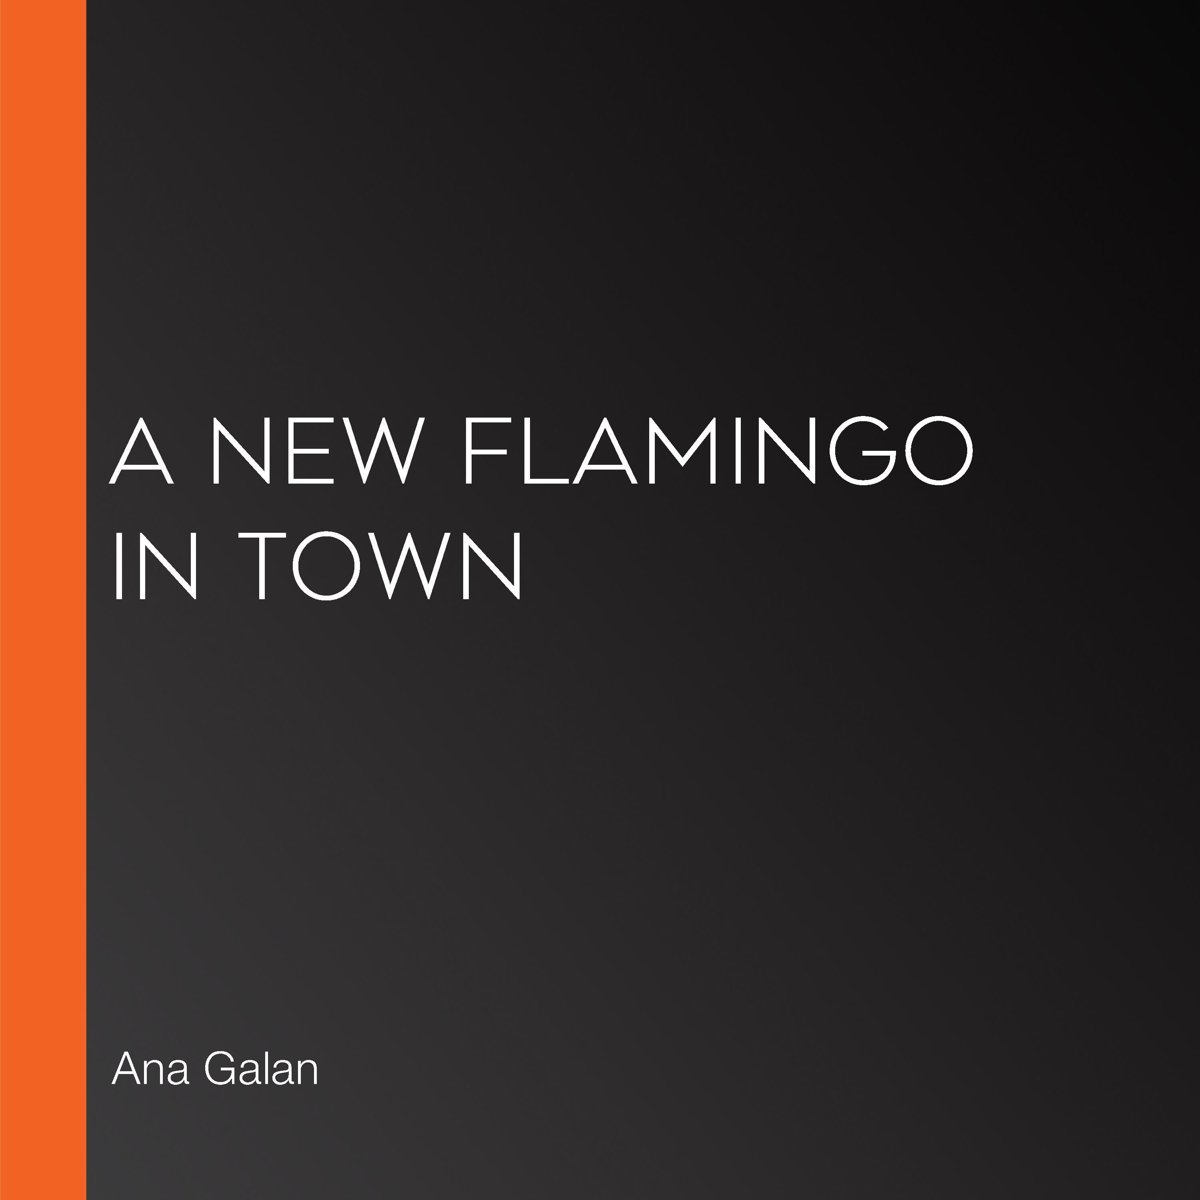 New Flamingo in Town, A